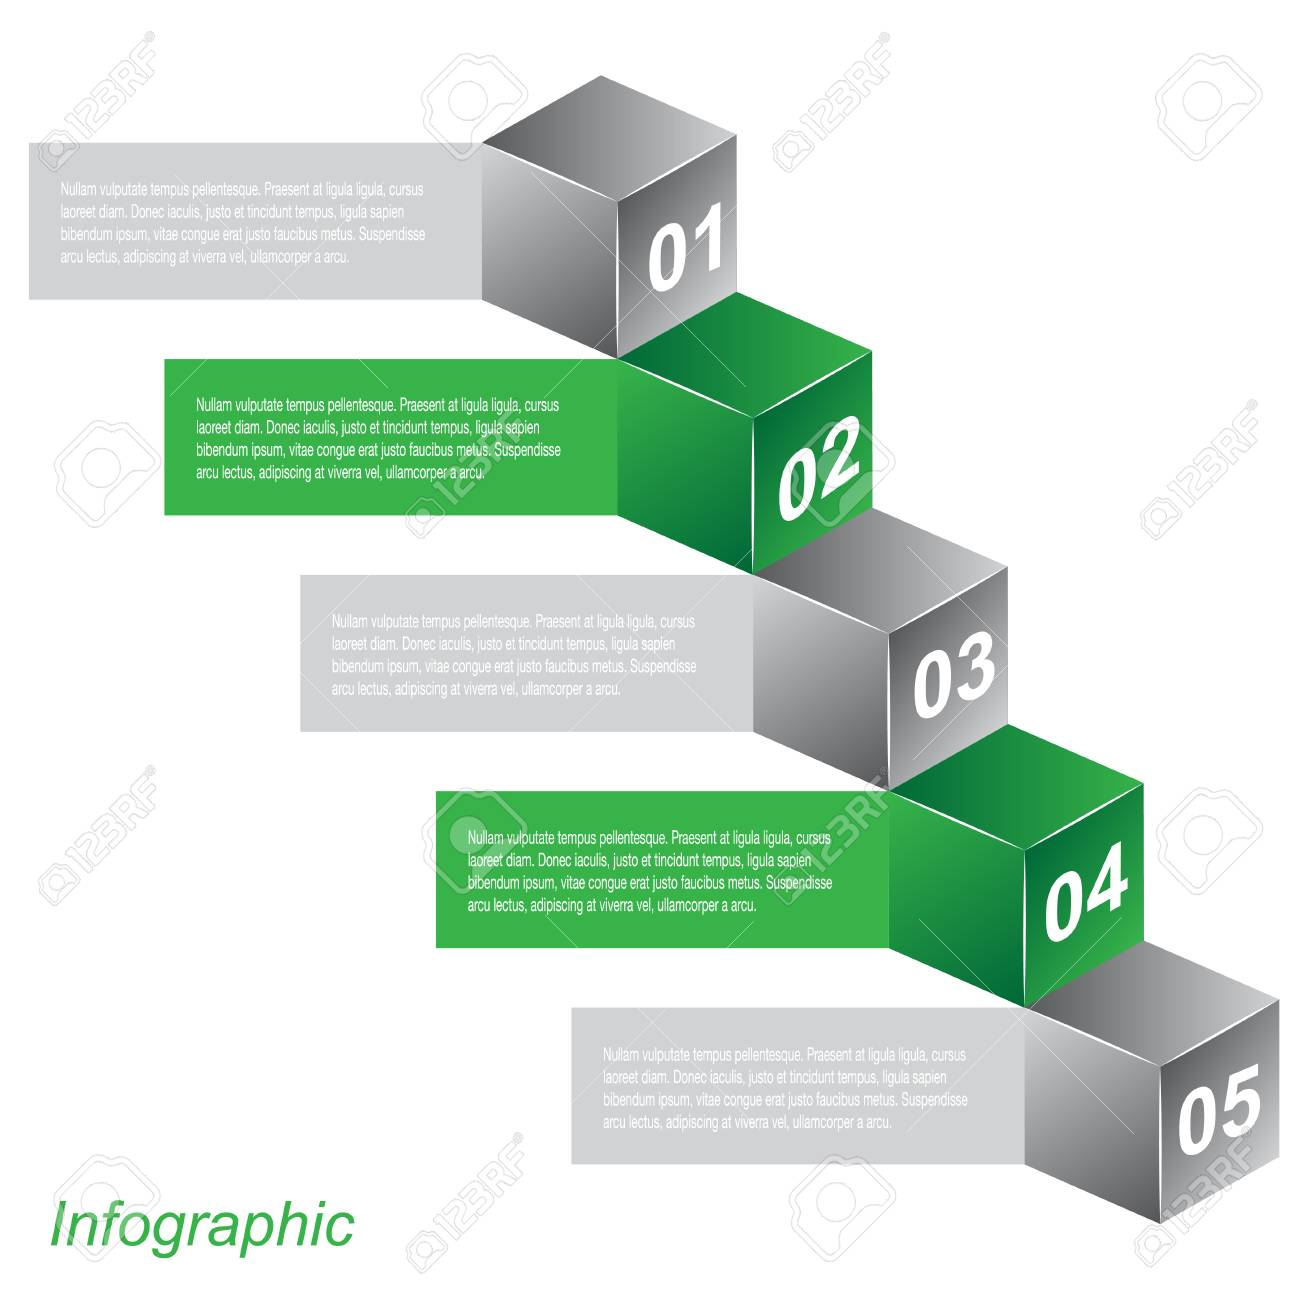 Info-graphic design templates in the form of a 3D box  Idea to